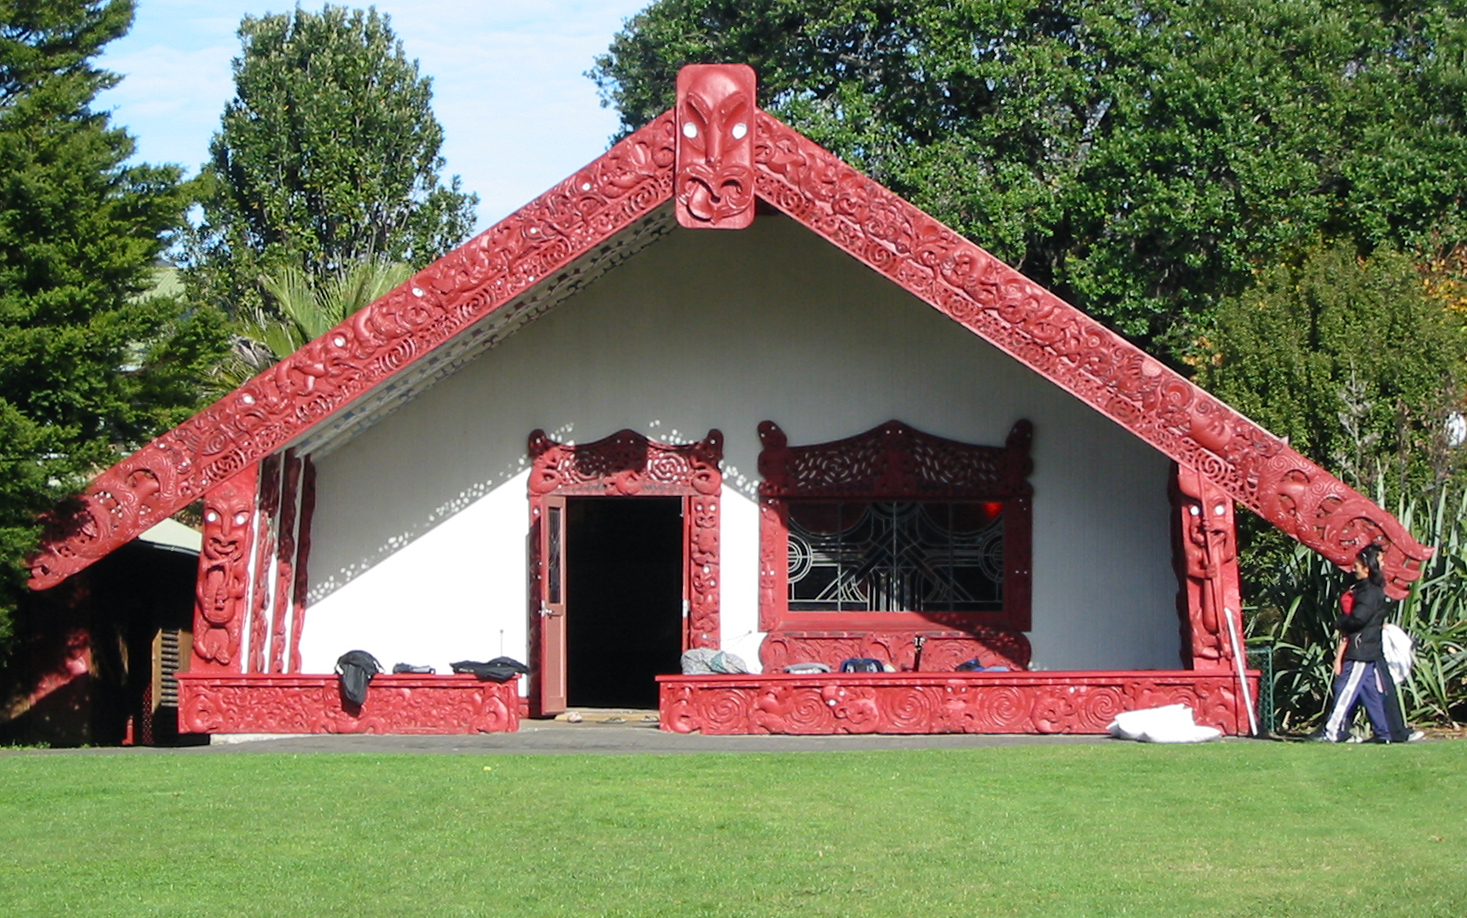 Waipapa marae, University of Auckland, New Zealand. The grassed area in front of the meeting house is the marae tea